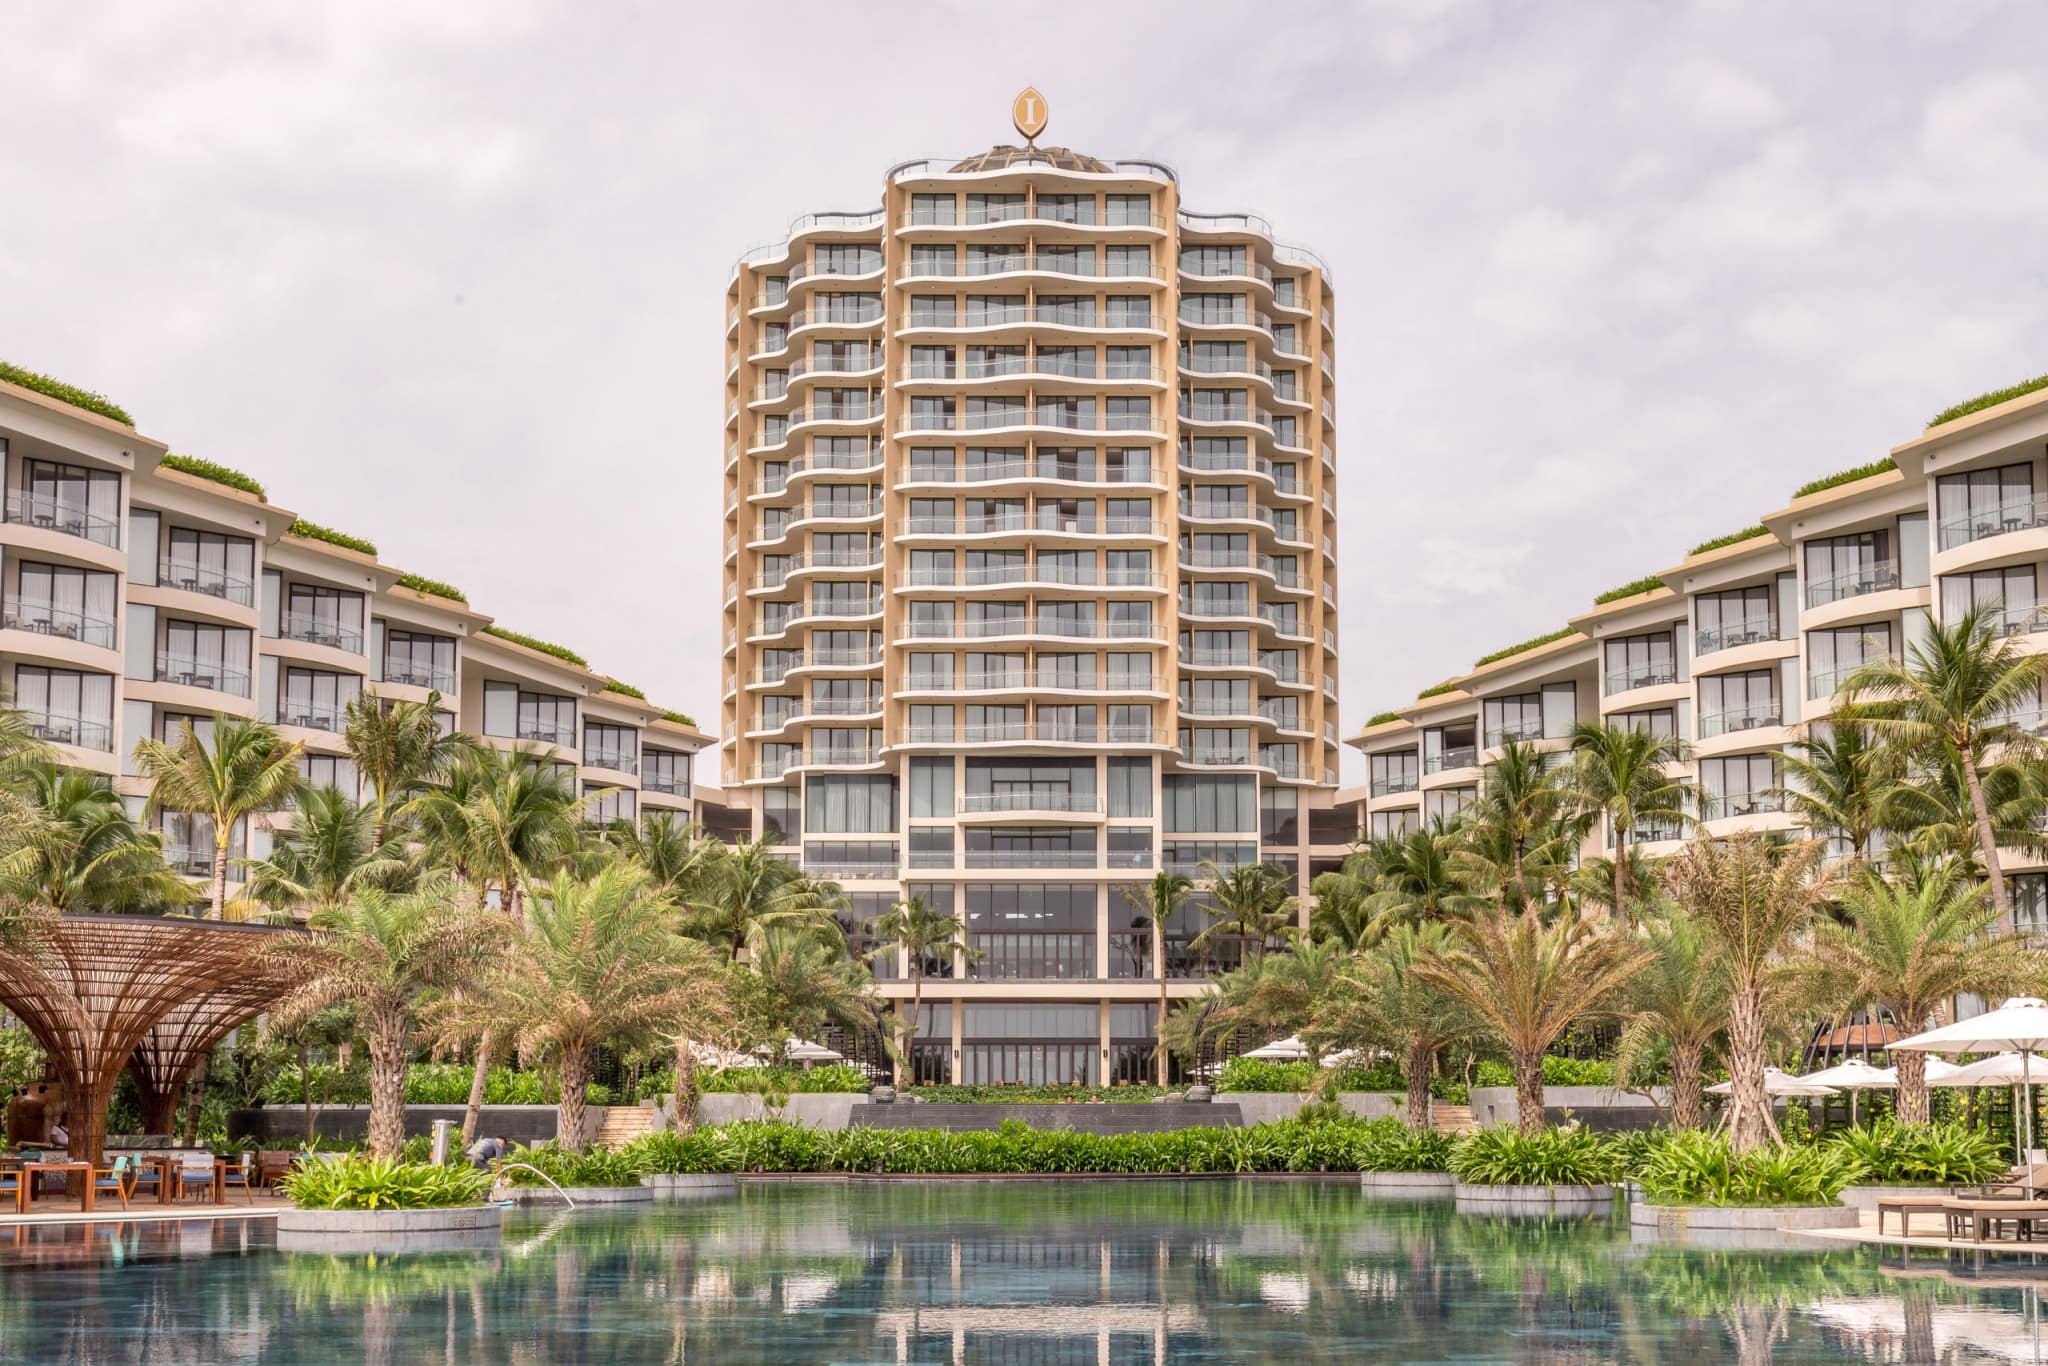 Outside pool view - VIETNAM - Luxury stay: Intercontinental Phu Quoc Long Beach Resort review